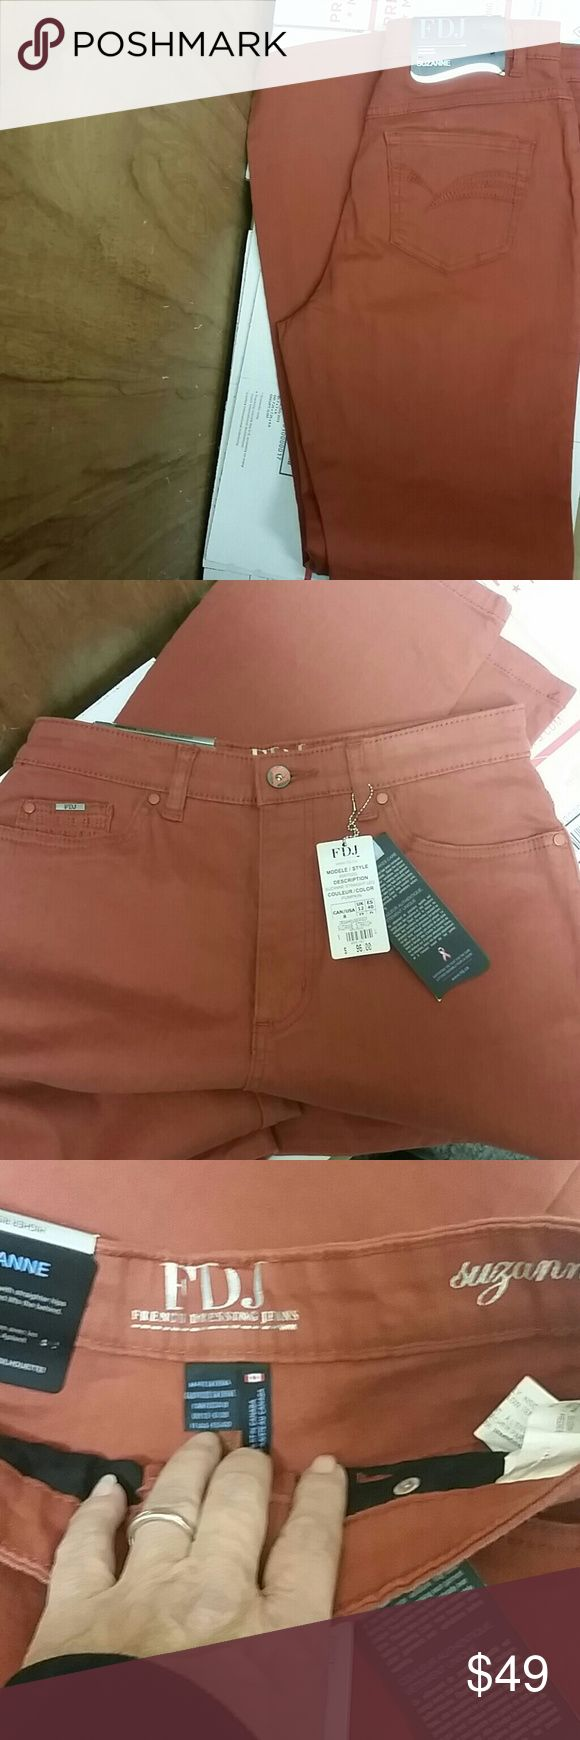 NWT FDJ SUZANNE JEANS SZ 8 New with tags fdj French Dressing Jeans Suzanne type high-rise straight leg pumpkin color FDJ Jeans